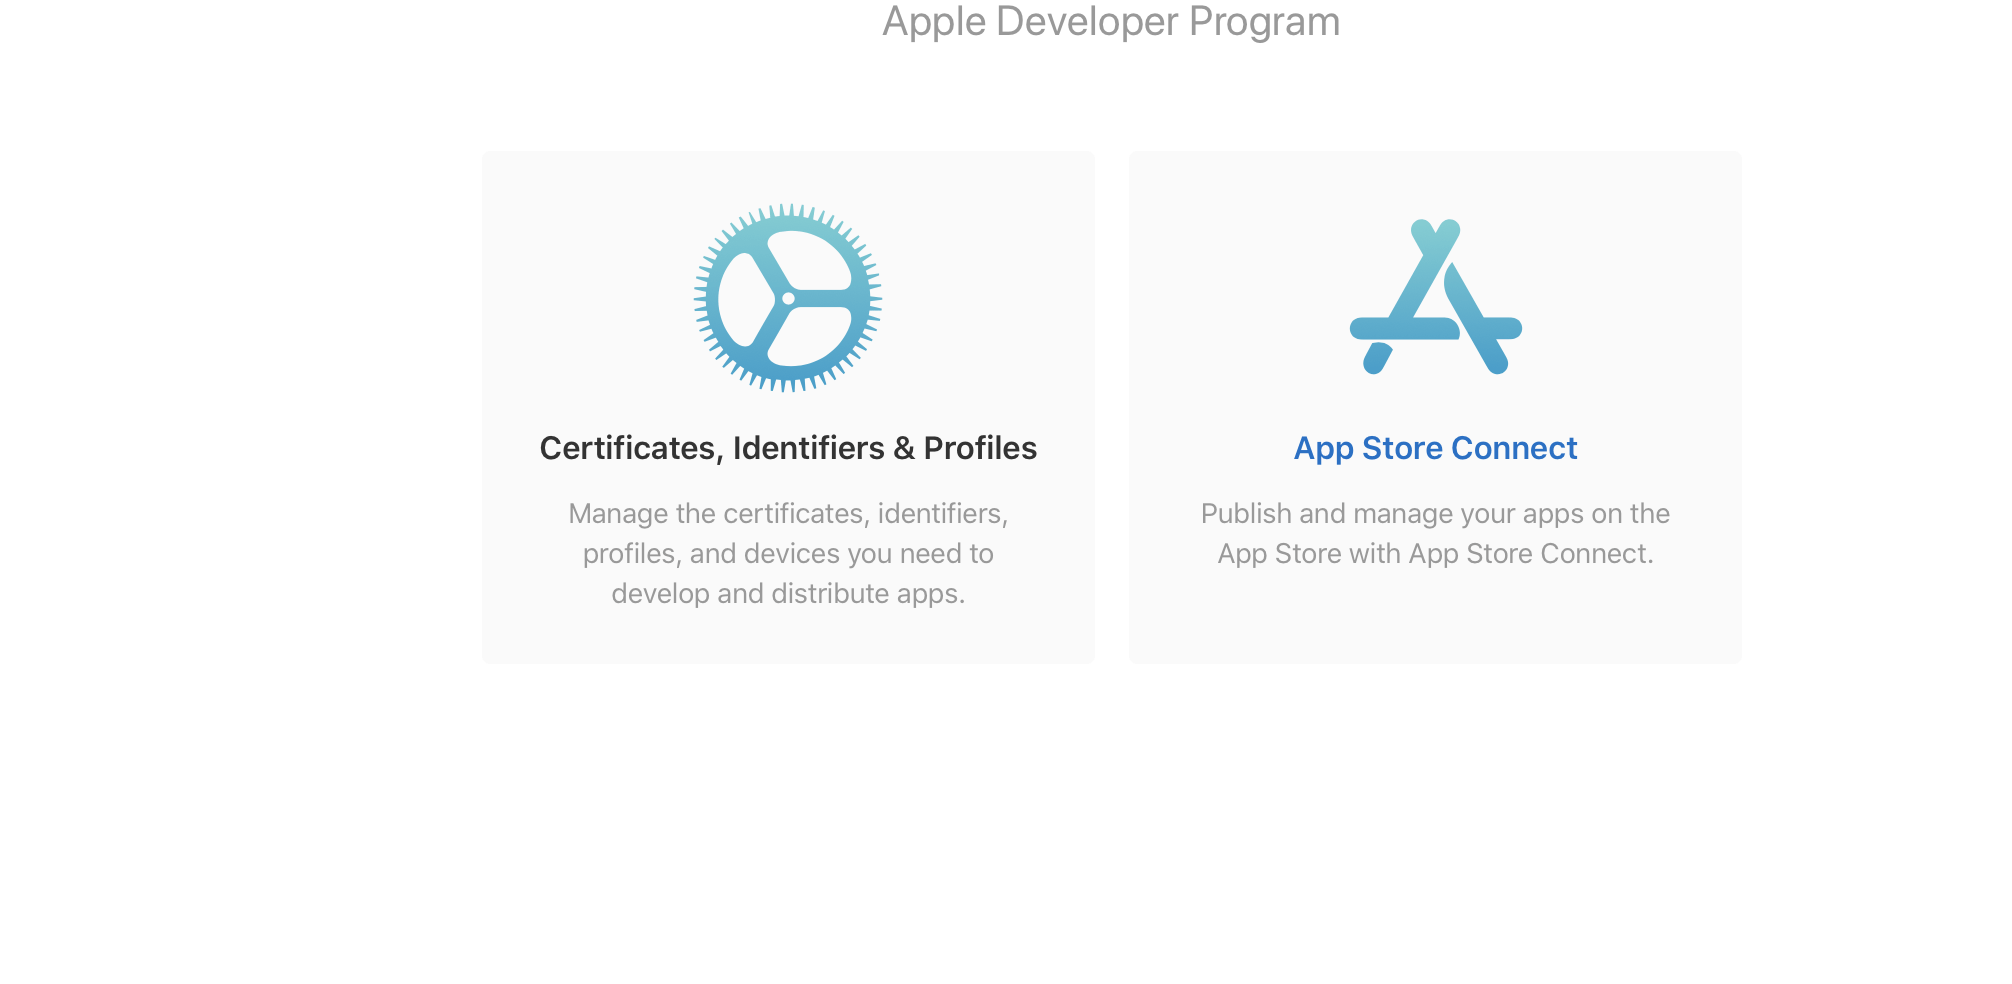 How to Publish Your App to the App Store (2019 guide) - Image 5